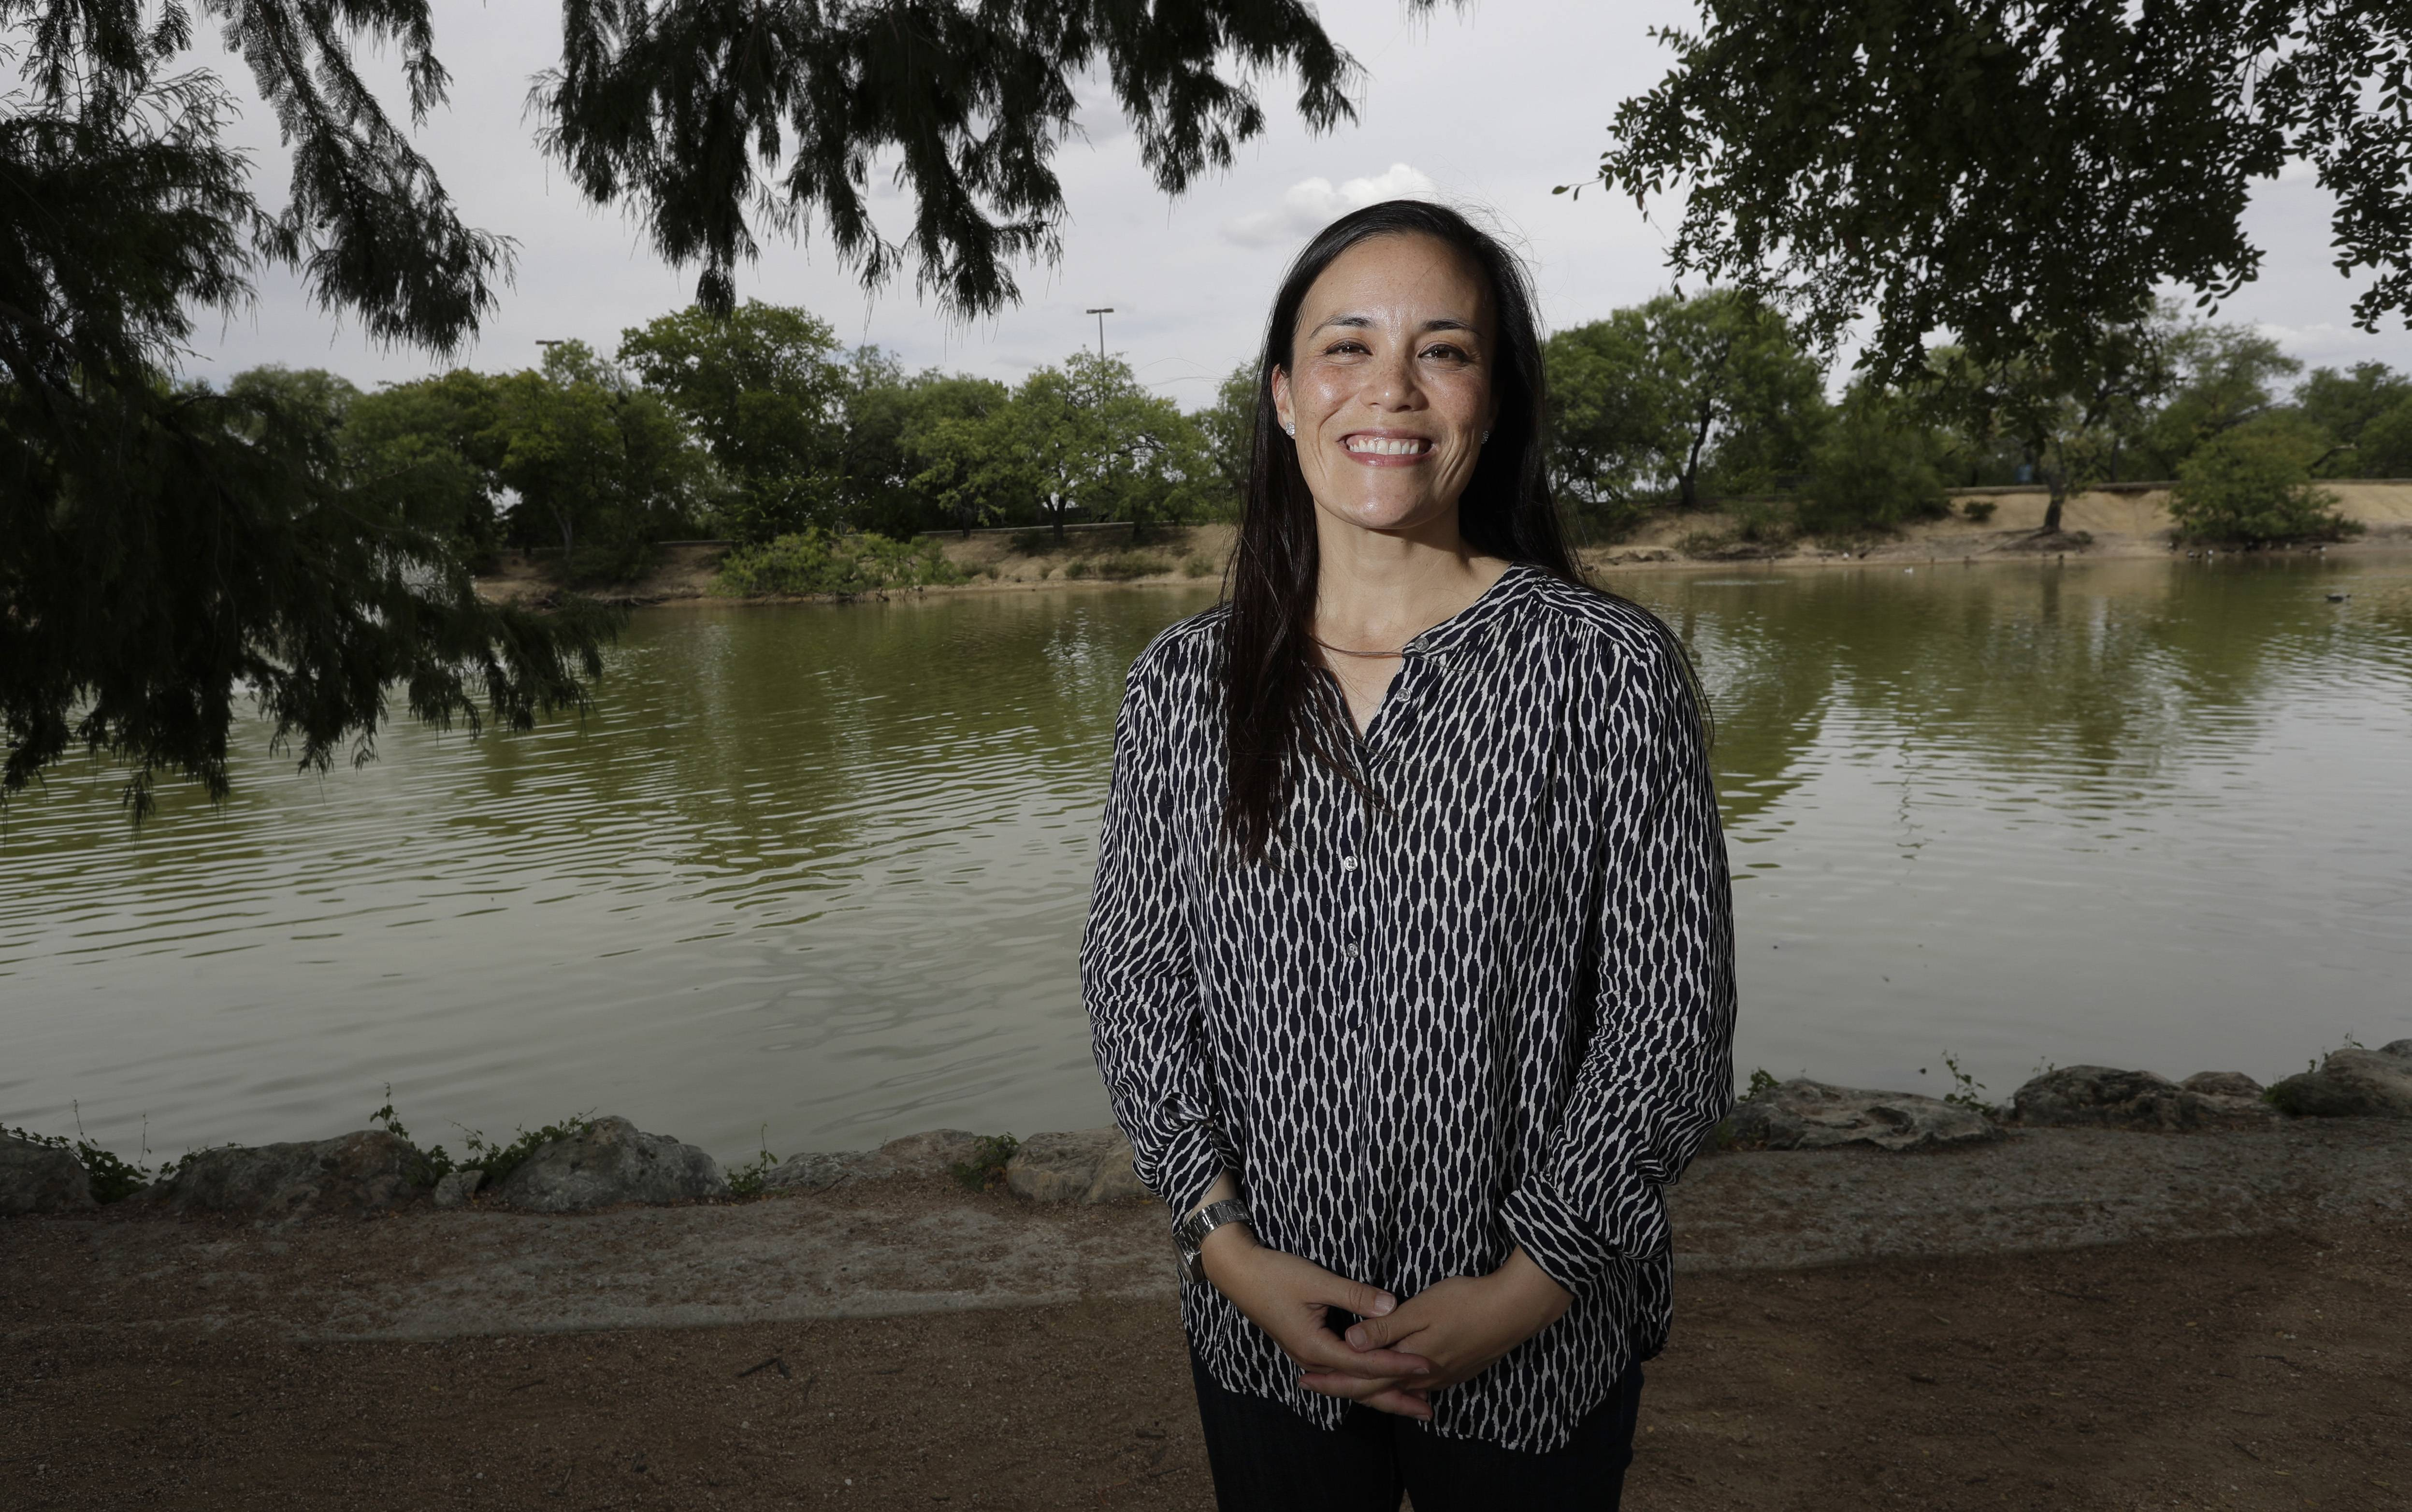 Gina Ortiz Jones, the Democratic nominee for a House seat in West Texas, poses for a photo, Friday, Aug. 10, 2018, in San Antonio, Texas. Jones, an Air Force veteran will face Republican Rep. Will Hurd. Currently, only four of 535 lawmakers are both women and veterans. Women with military experience  many of them combat veterans  are among the record number of female candidates running for office this year.